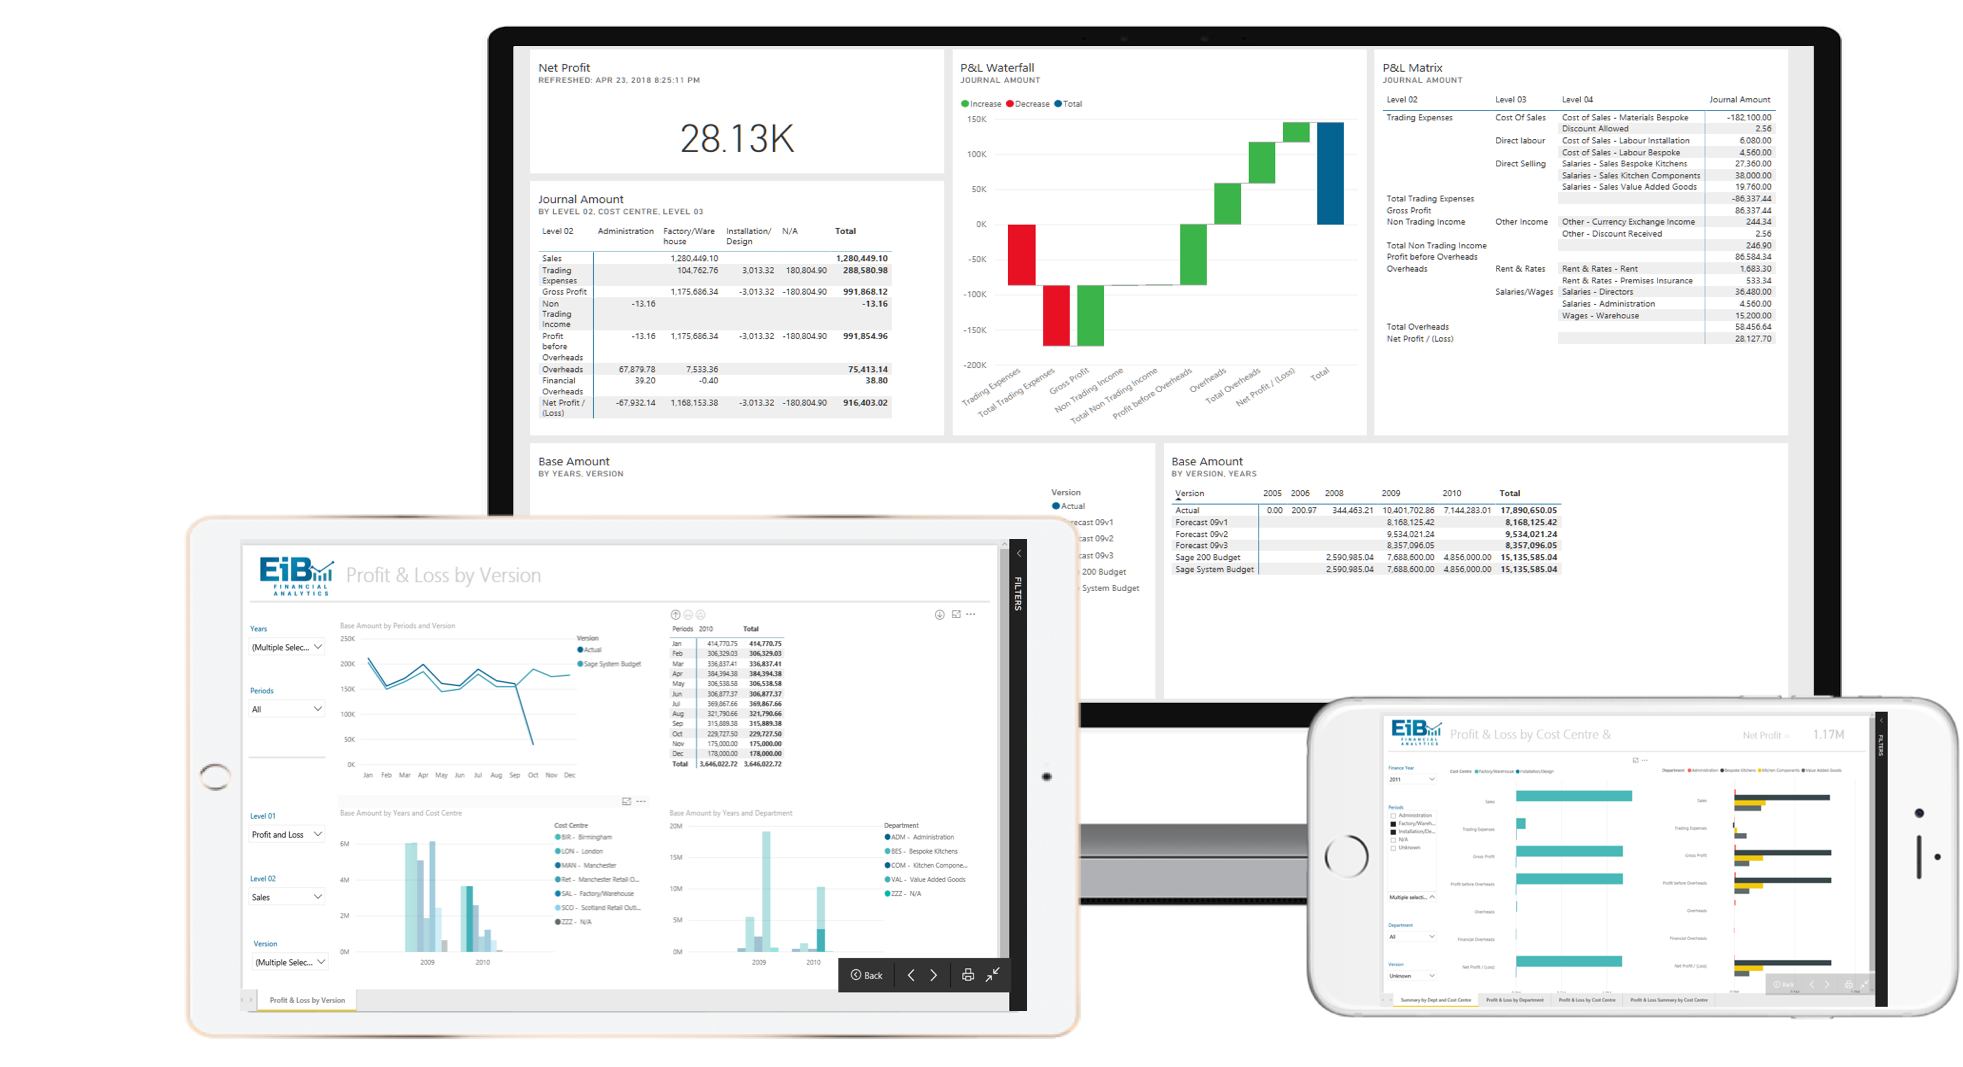 EiB Financial Analytics Web and Mobile Power BI Reports